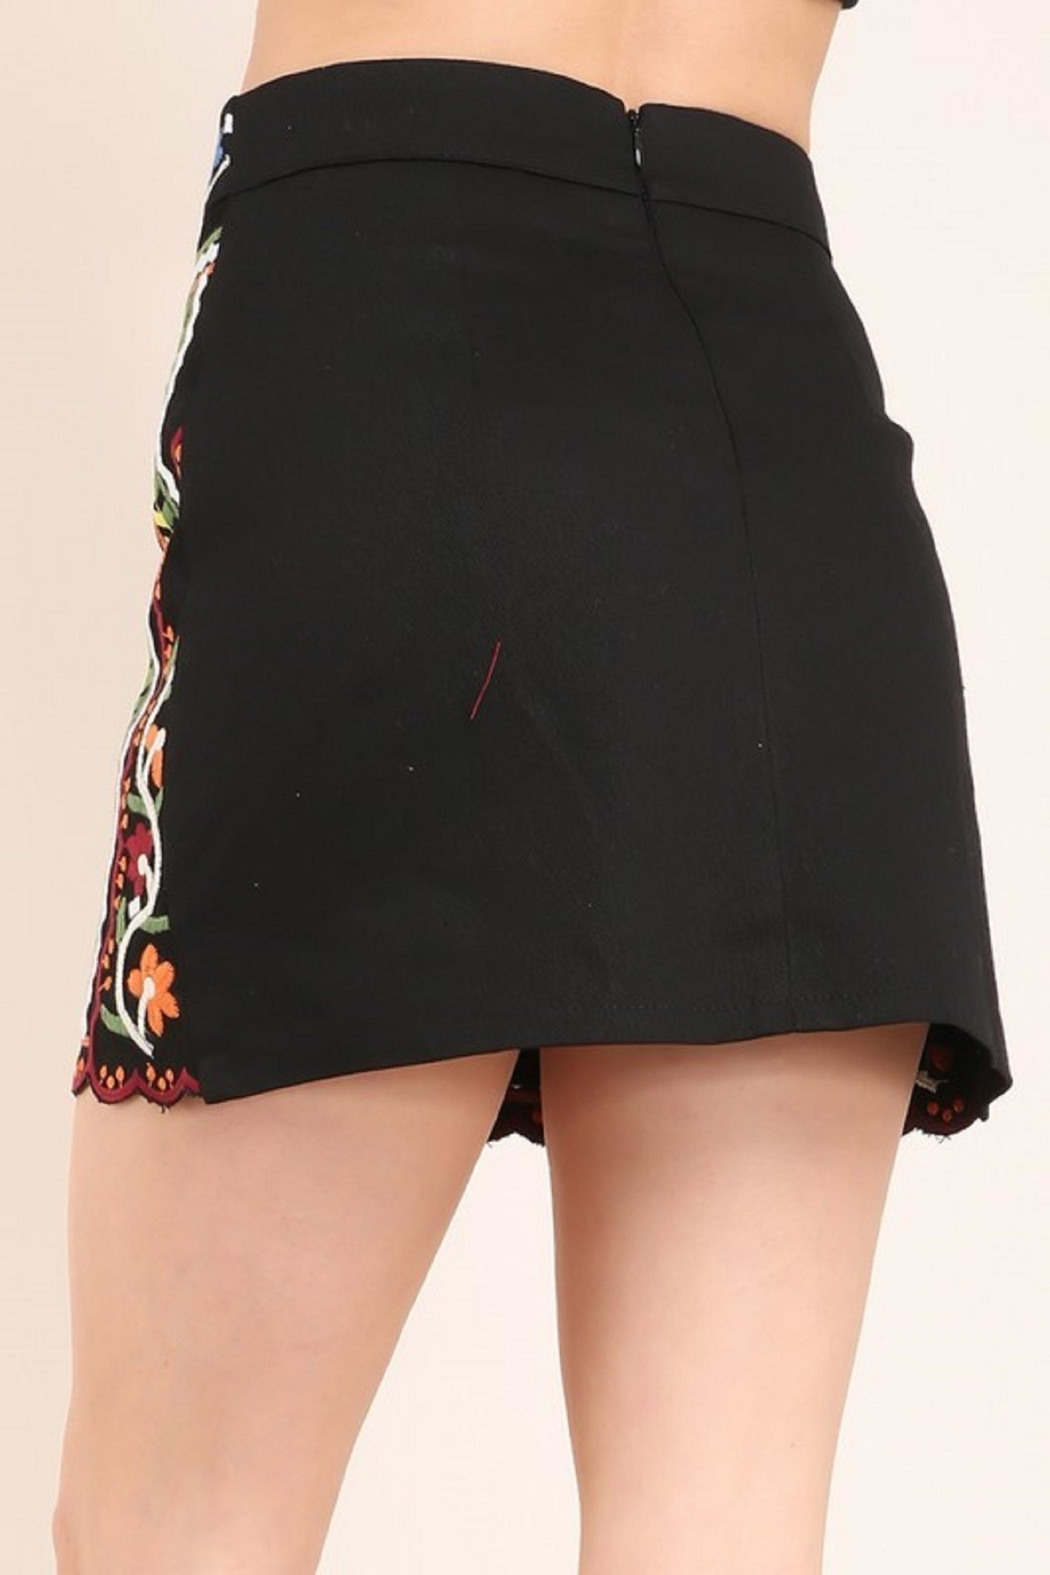 Faith Apparel The Jinna Skirt - Side Cropped Image